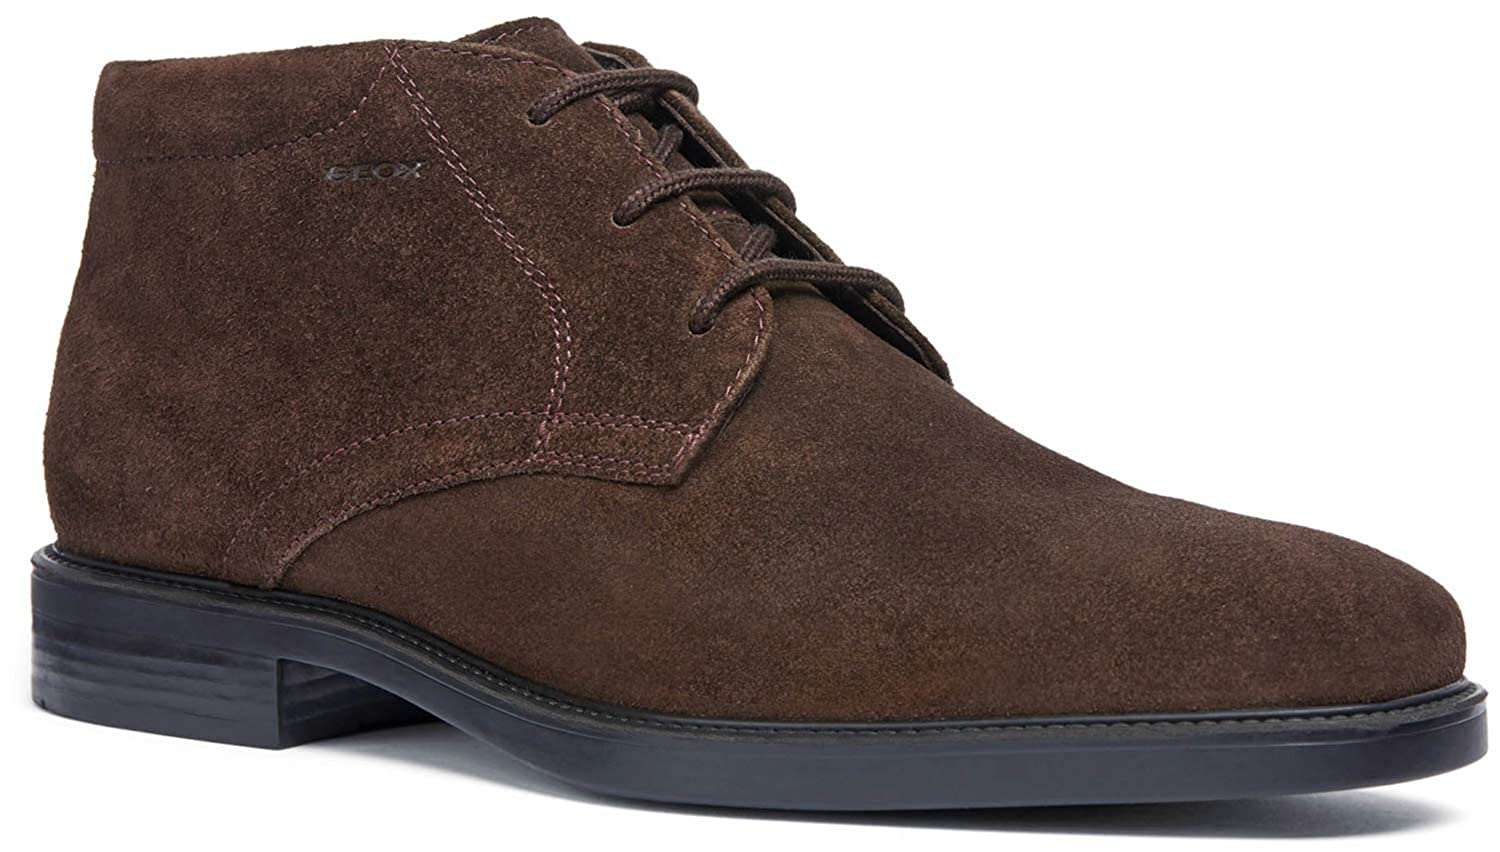 Geox Brandolf Mens Lace-Up Shoes Brown